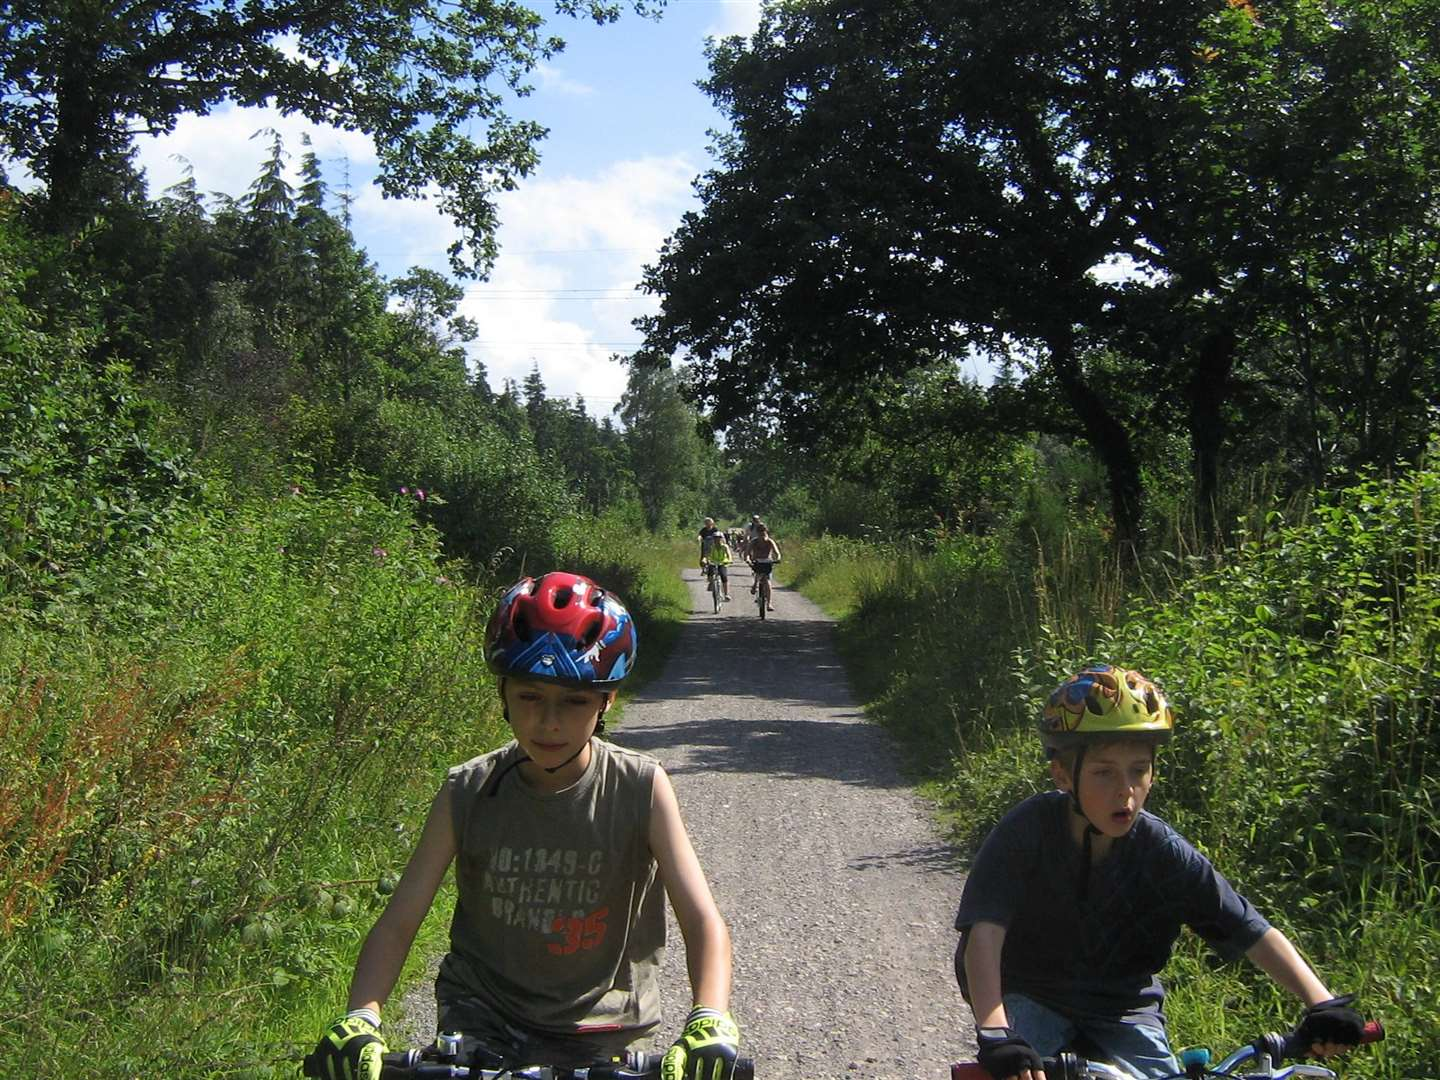 The Crab and Winkle route is popular among cyclists